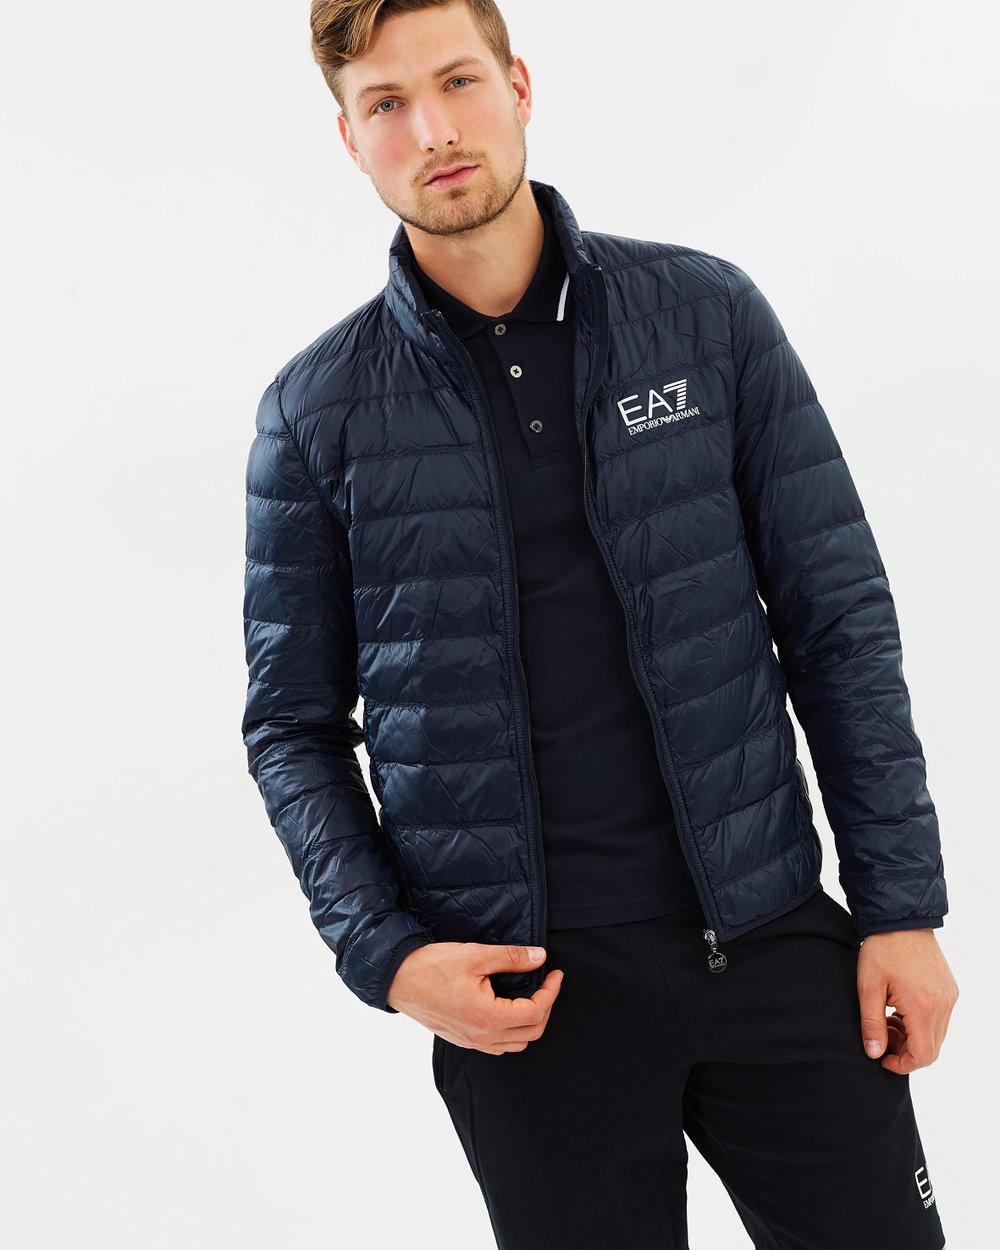 a0d1703ee792 Lightweight Down Jacket by Emporio Armani EA7 Online   THE ICONIC    Australia